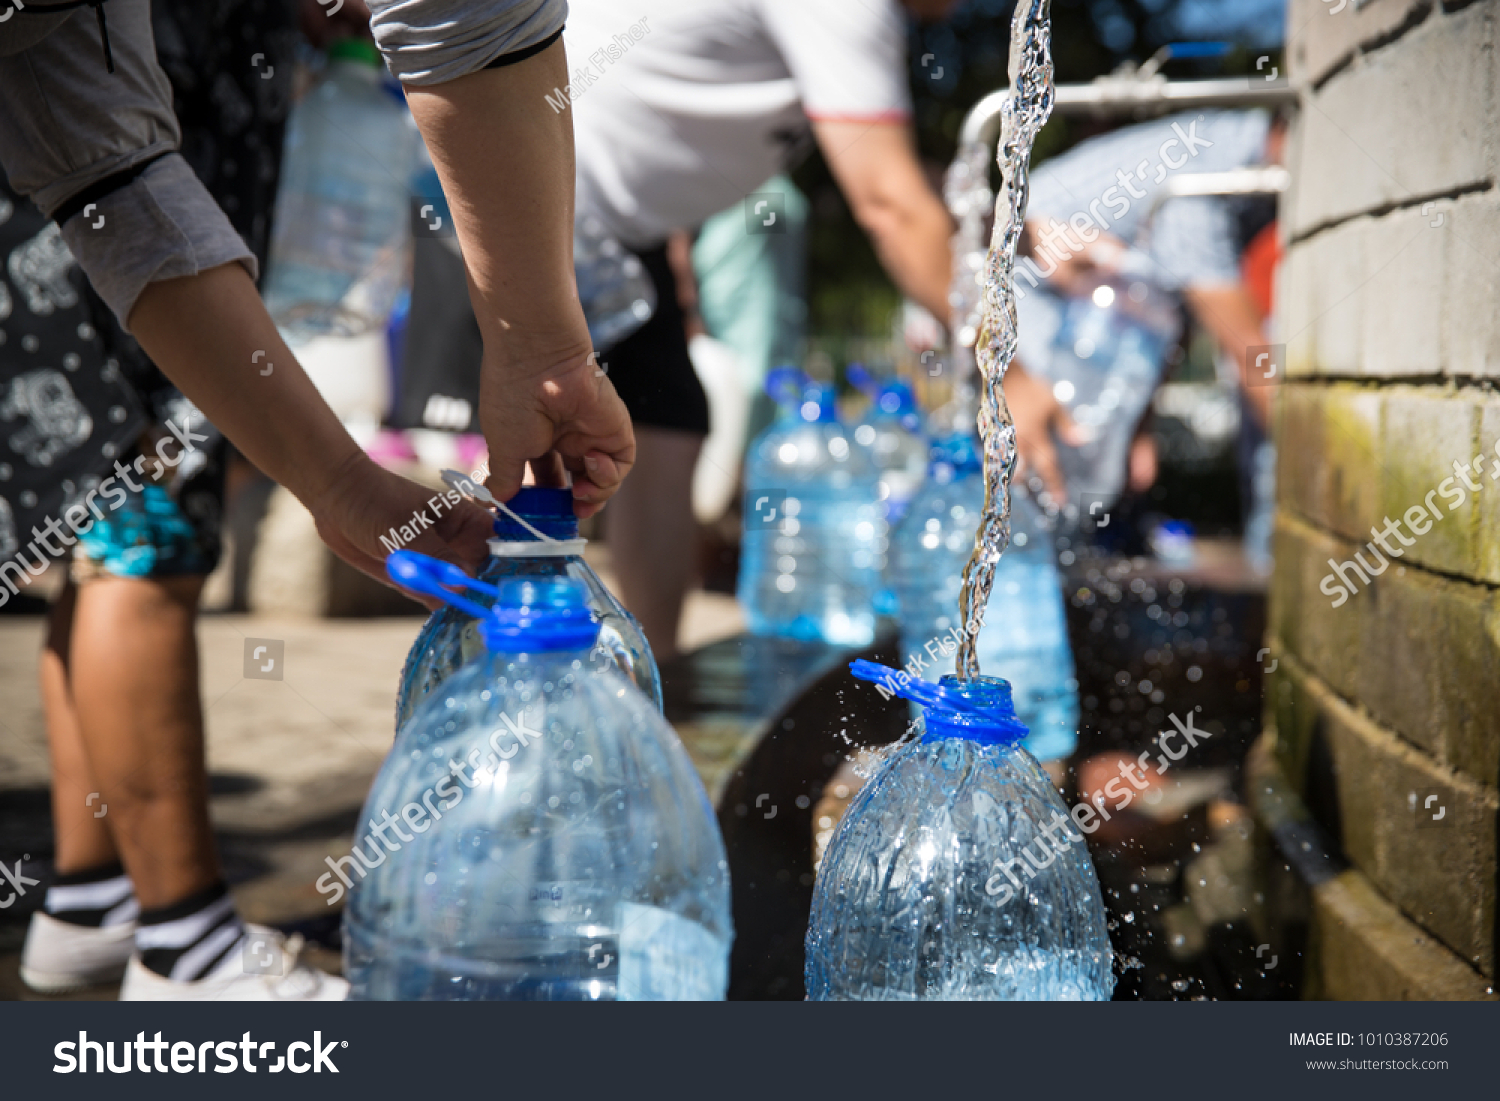 Collecting natural spring water 5 litre stock photo 1010387206 collecting natural spring water with 5 litre plastic water bottle at newlands natural spring cape town biocorpaavc